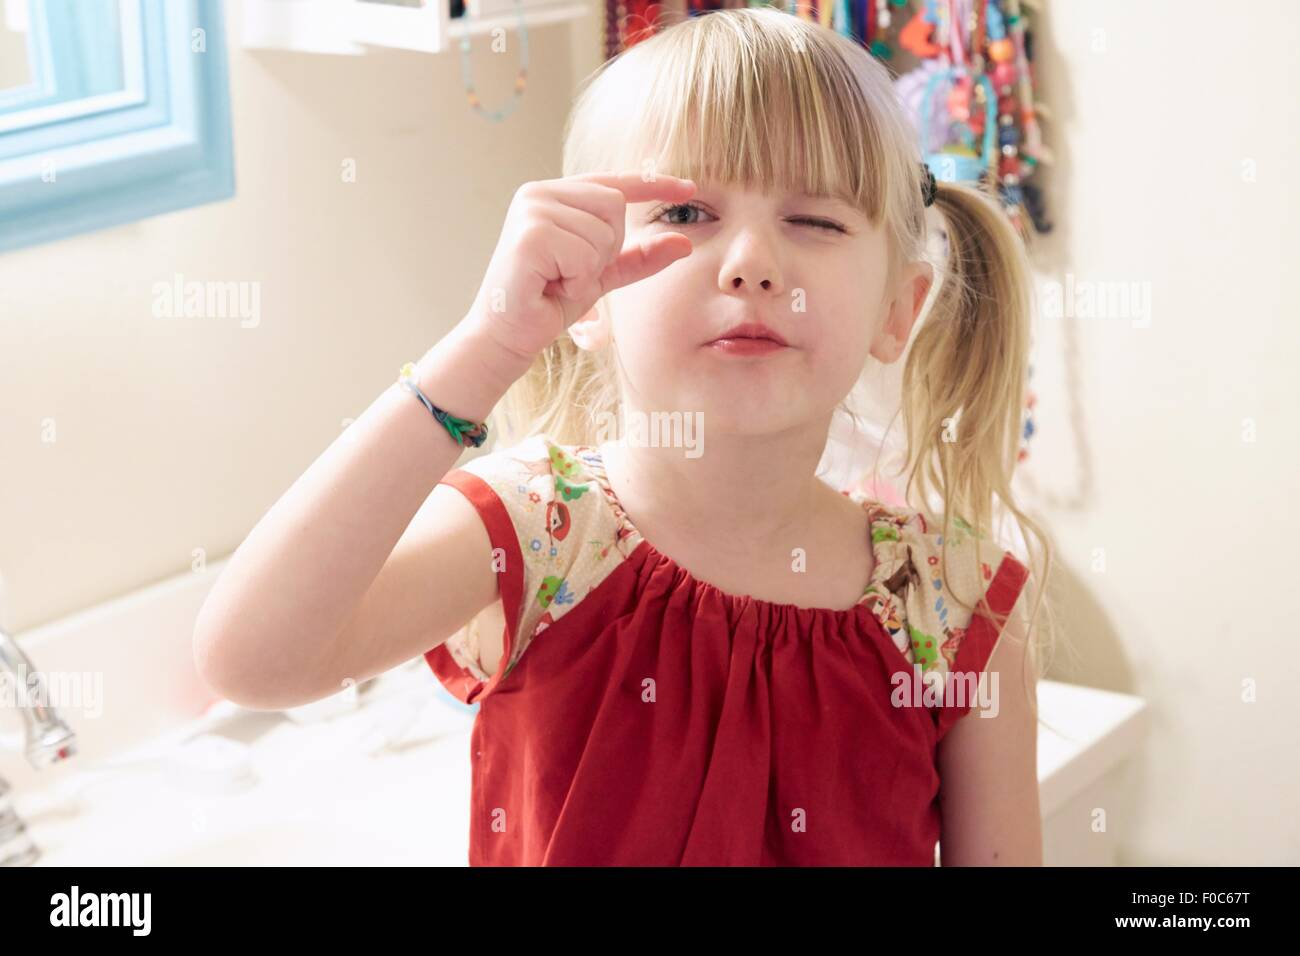 Portrait of young girl, looking through fingers - Stock Image